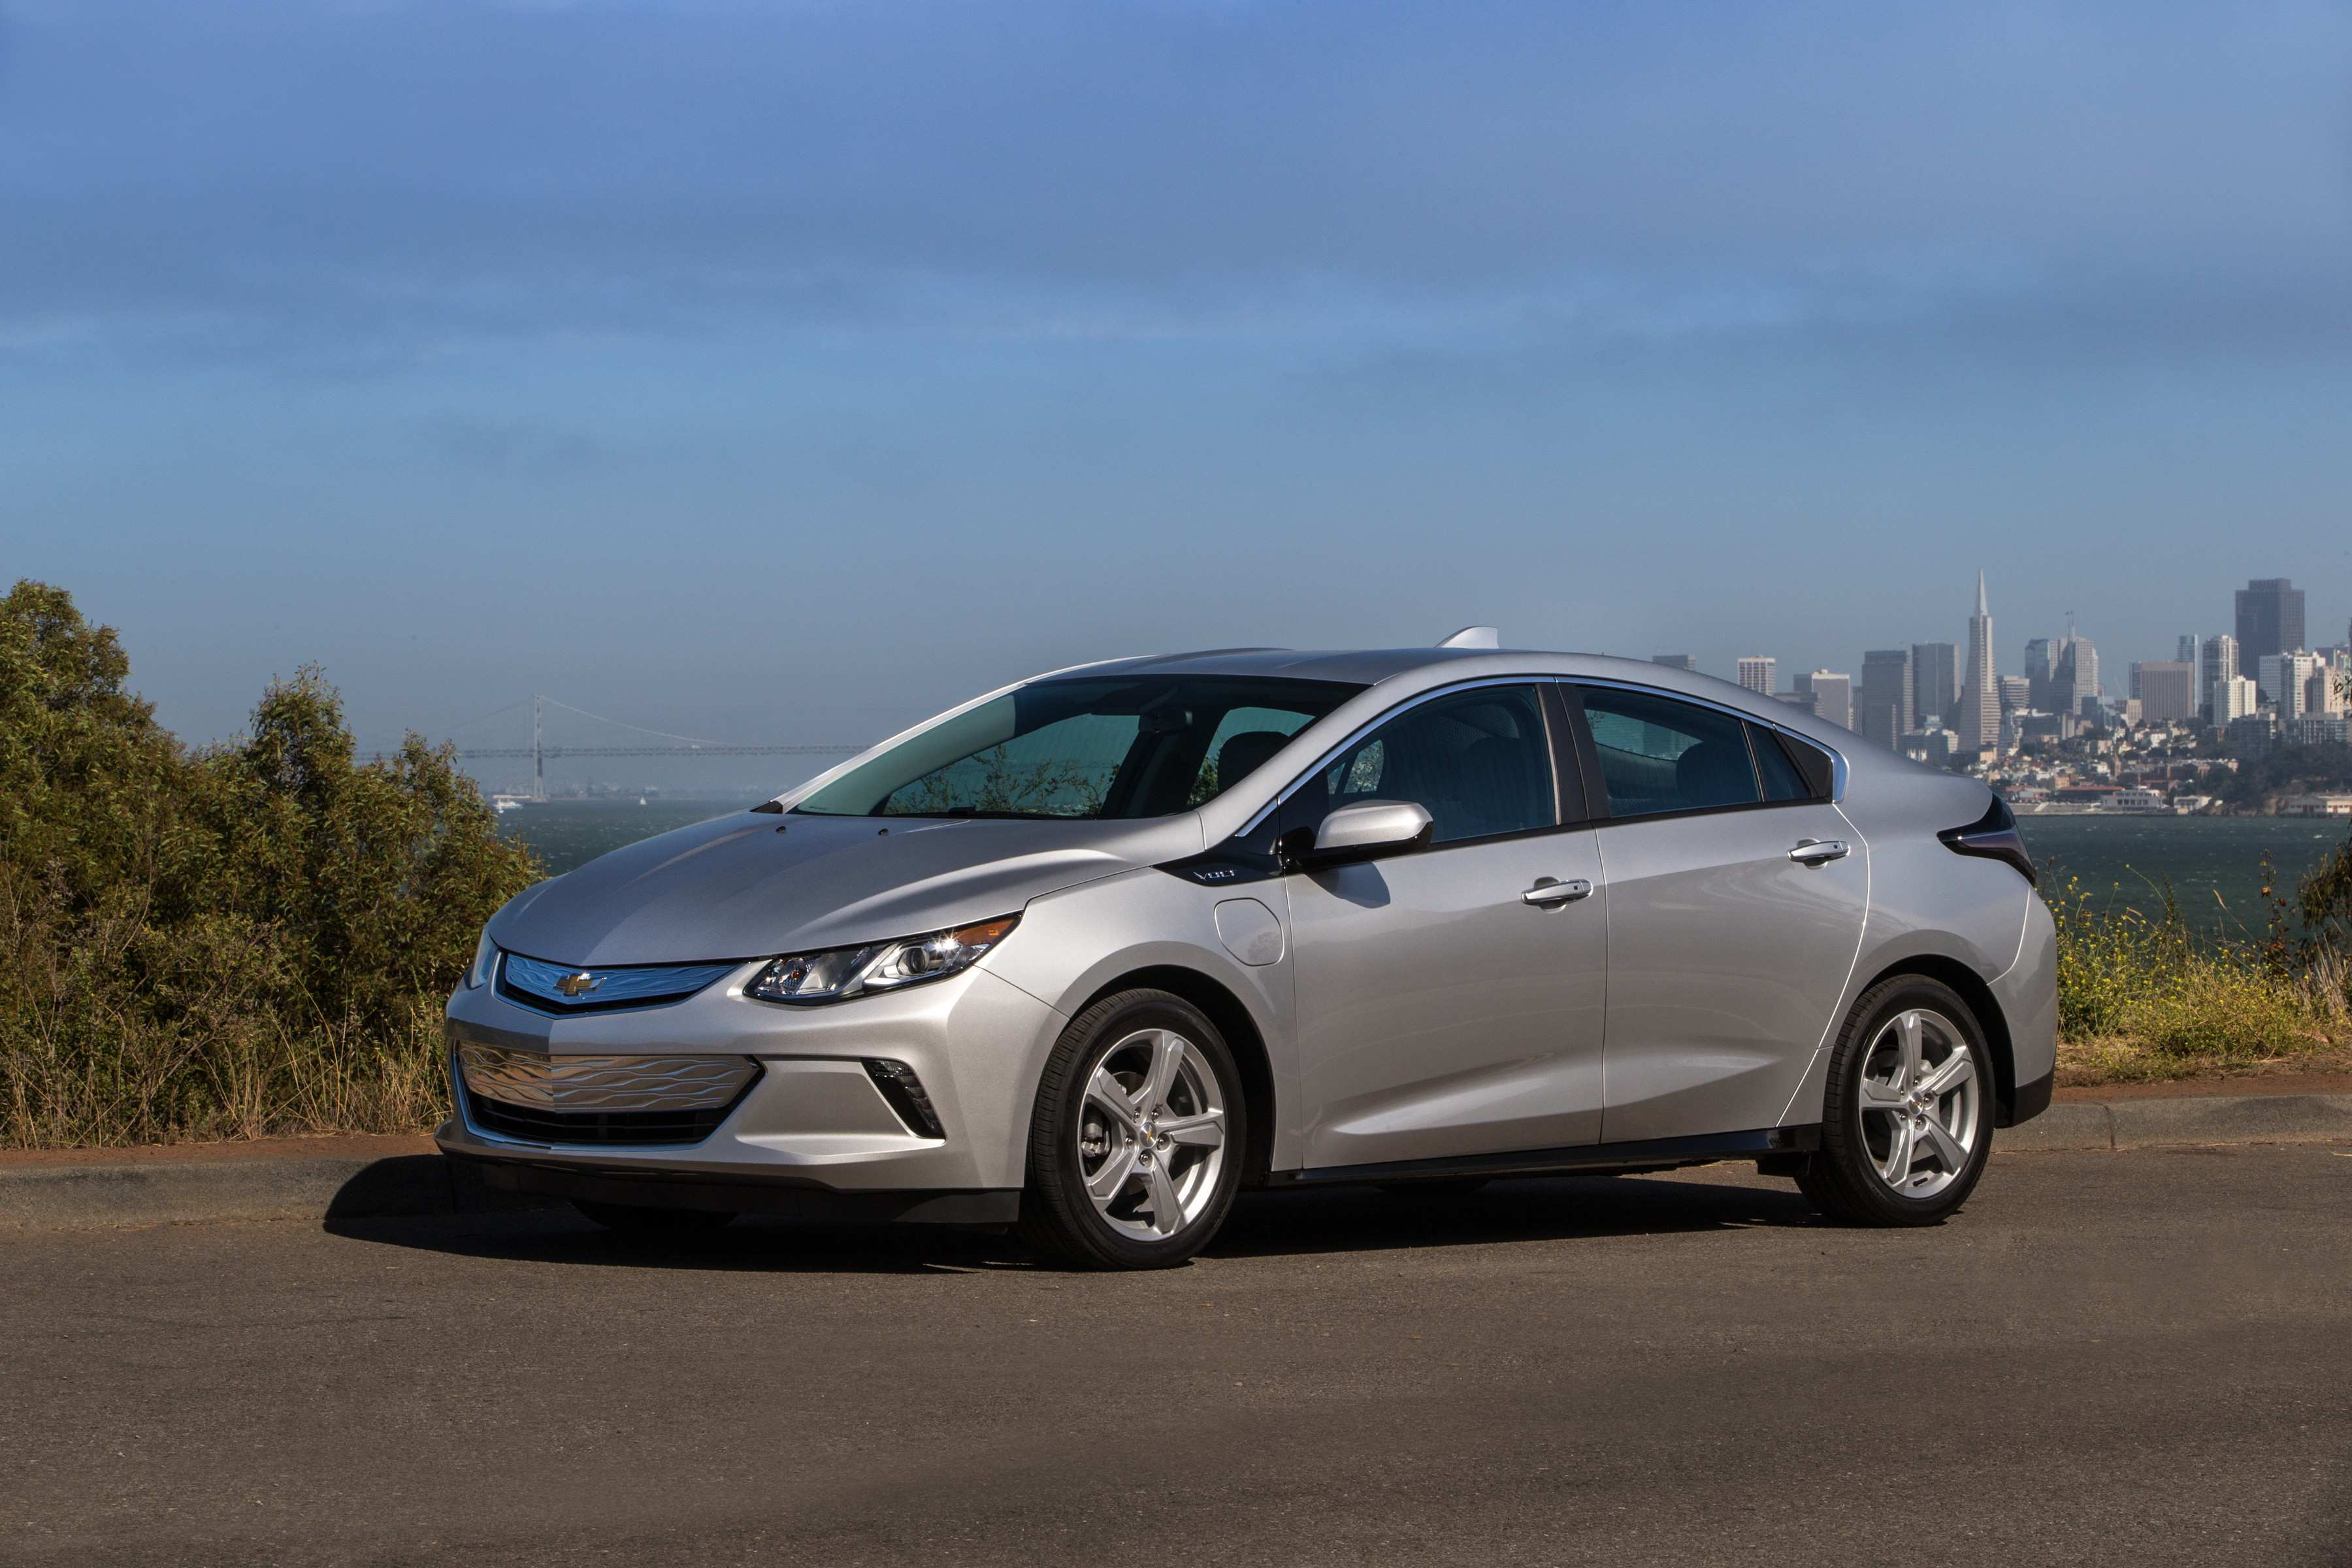 54 New Chevrolet Volt 2019 Canada First Drive Review for Chevrolet Volt 2019 Canada First Drive